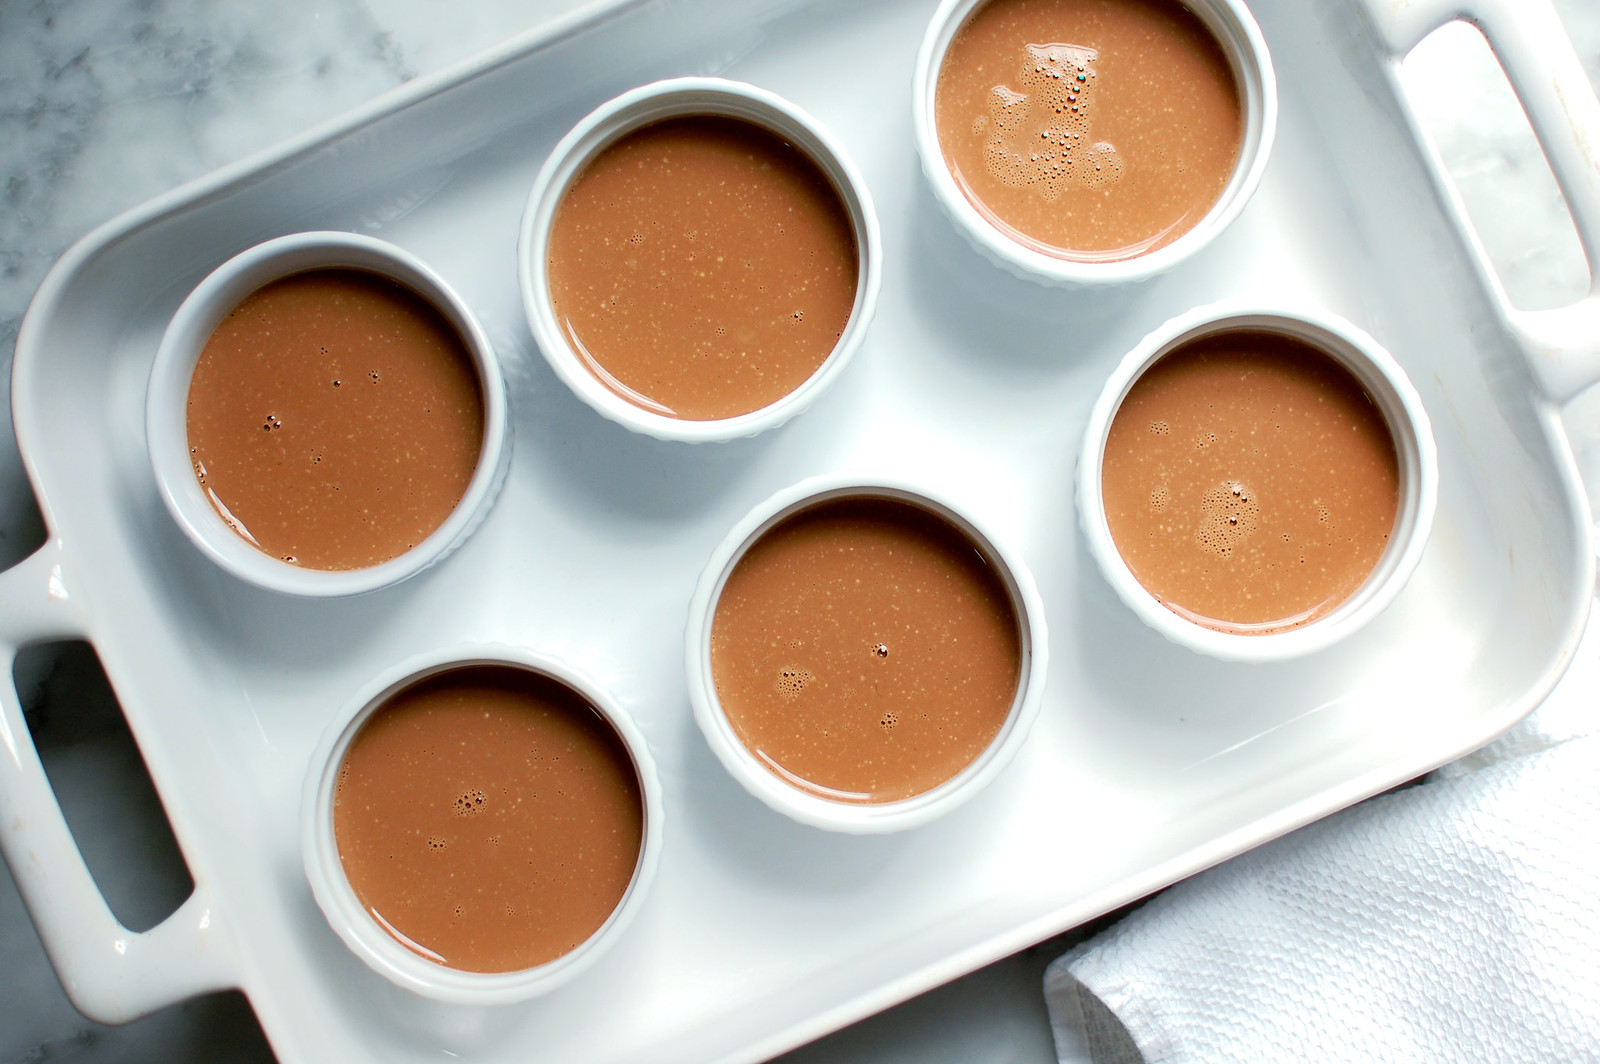 puddings in ramekins ready for bain marie and oven